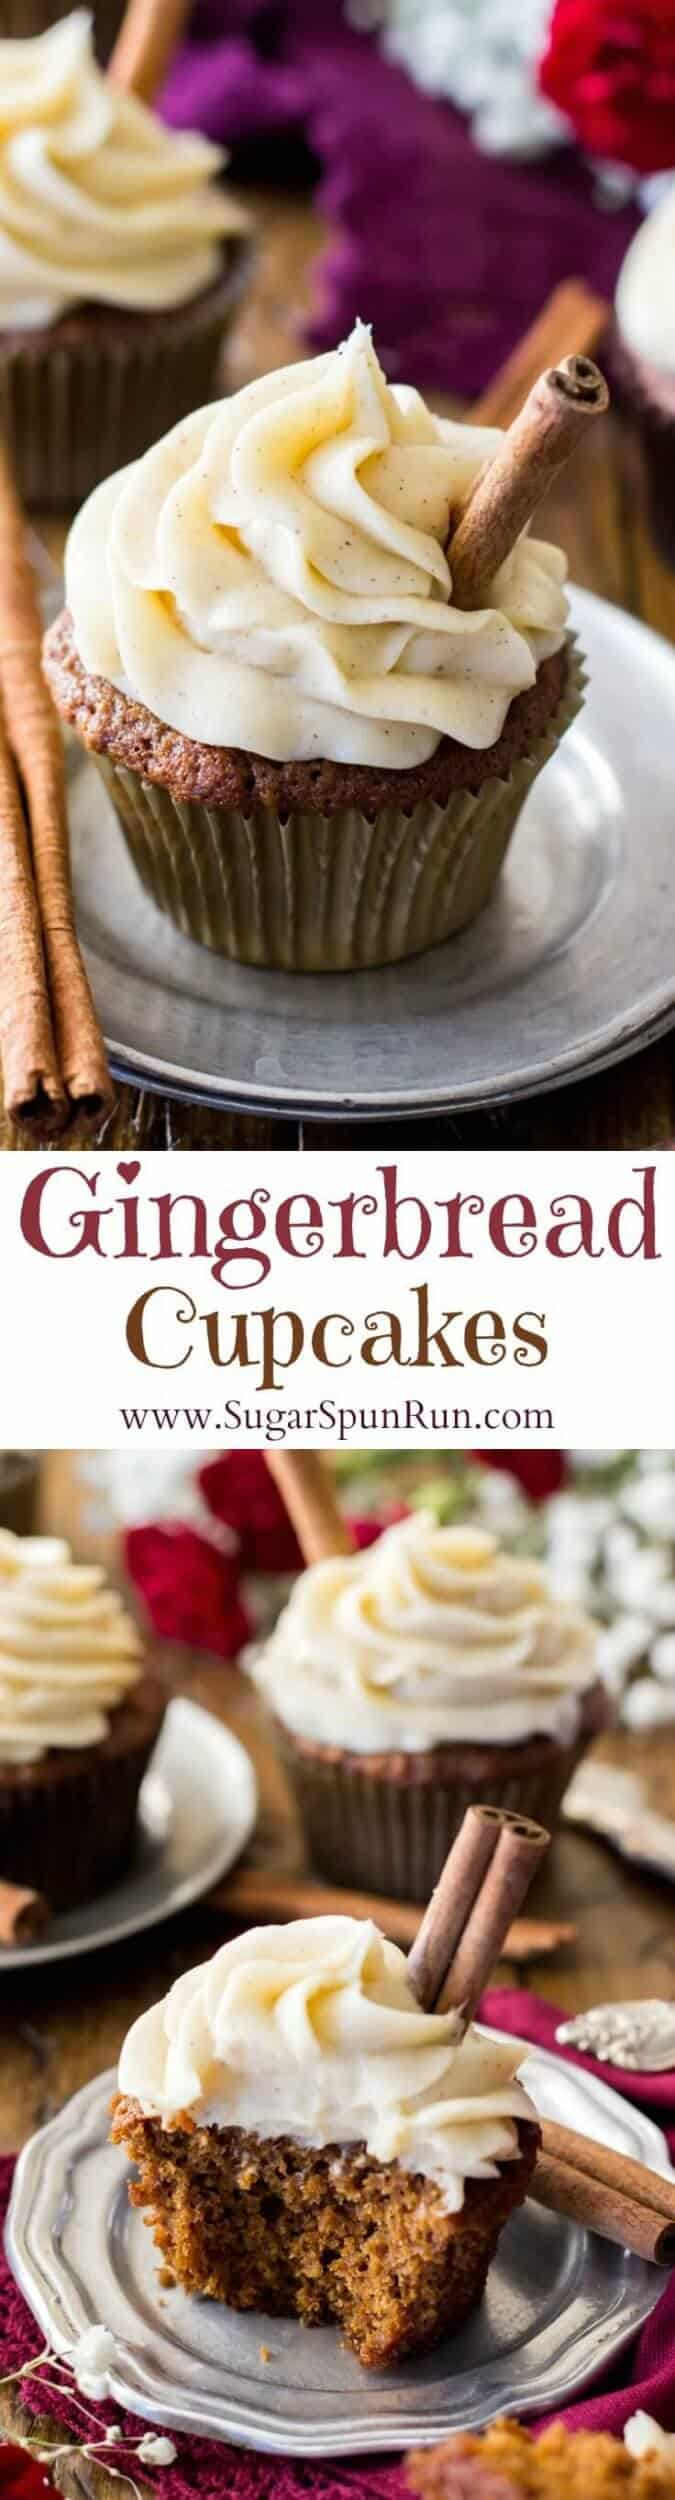 Gingerbread Cupcakes || SugarSpunRun